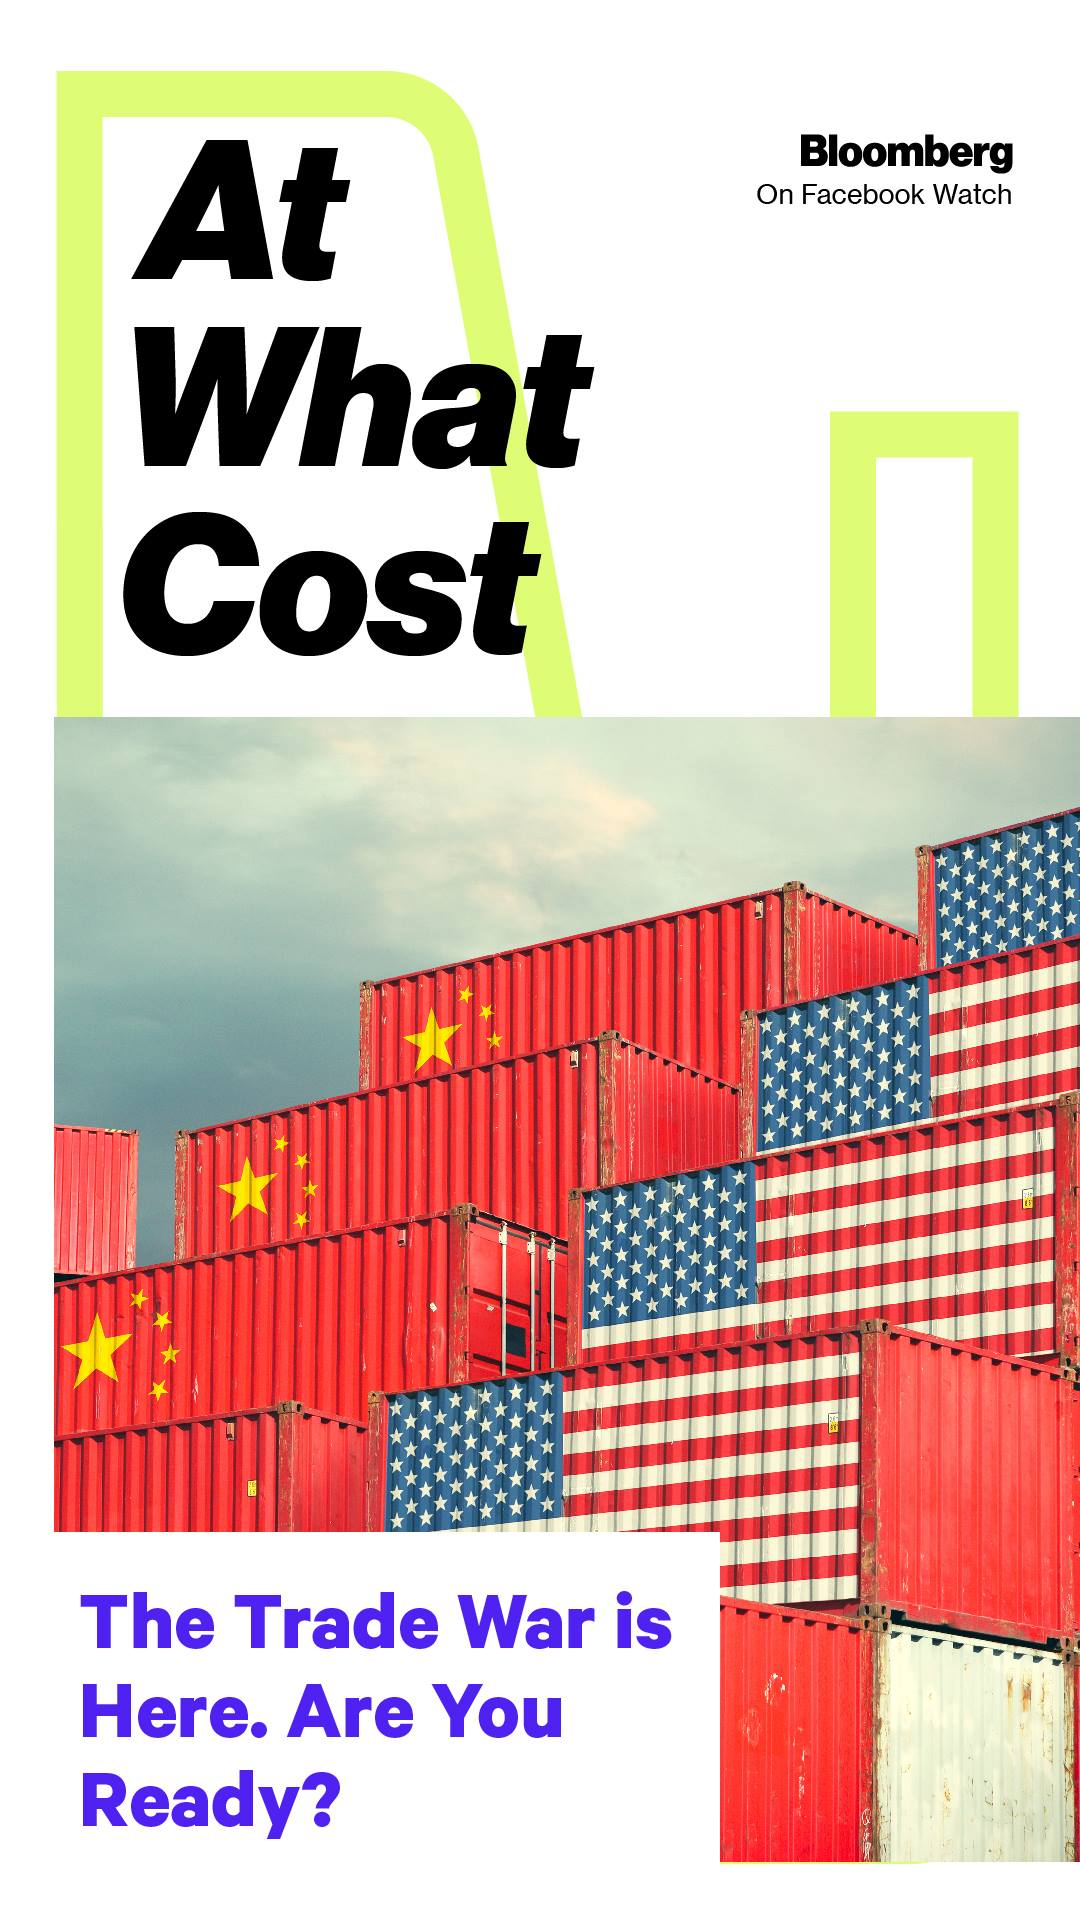 Bloomberg | The Trade War Is Here. Are You Ready?